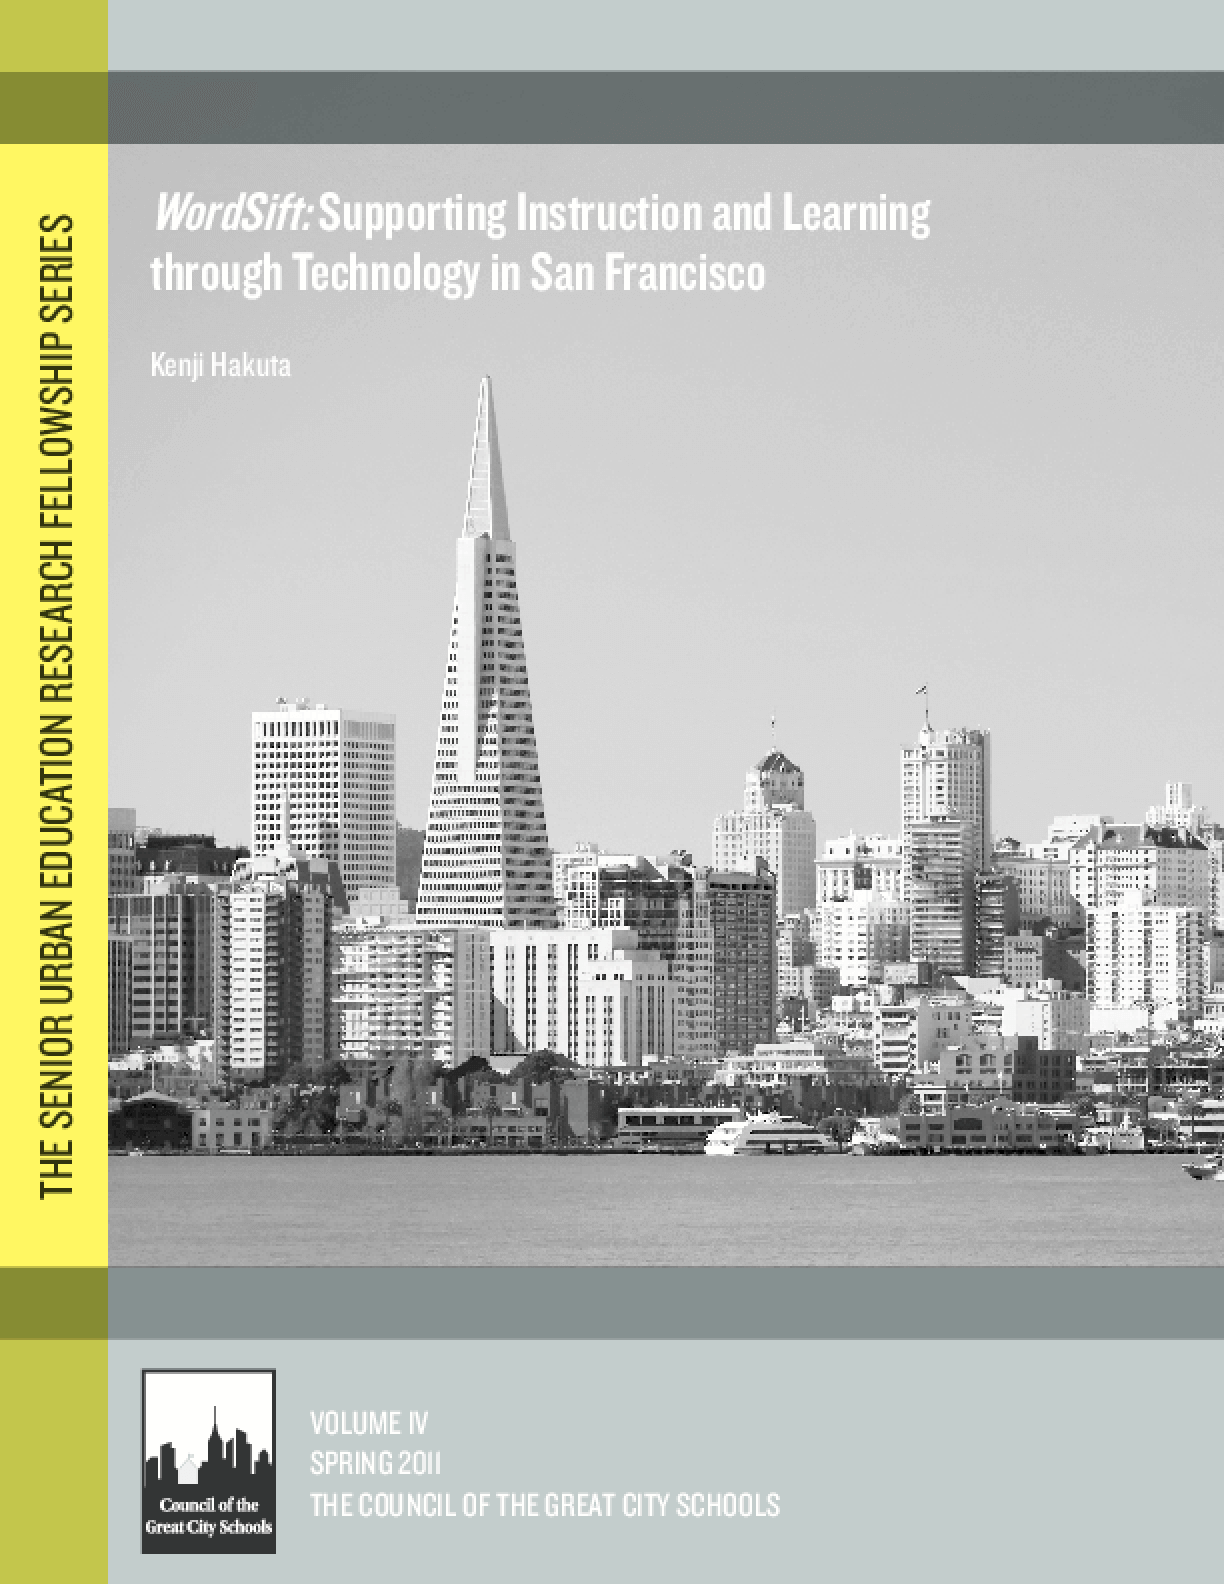 WordSift: Supporting Instruction and Learning Through Technology in San Francisco